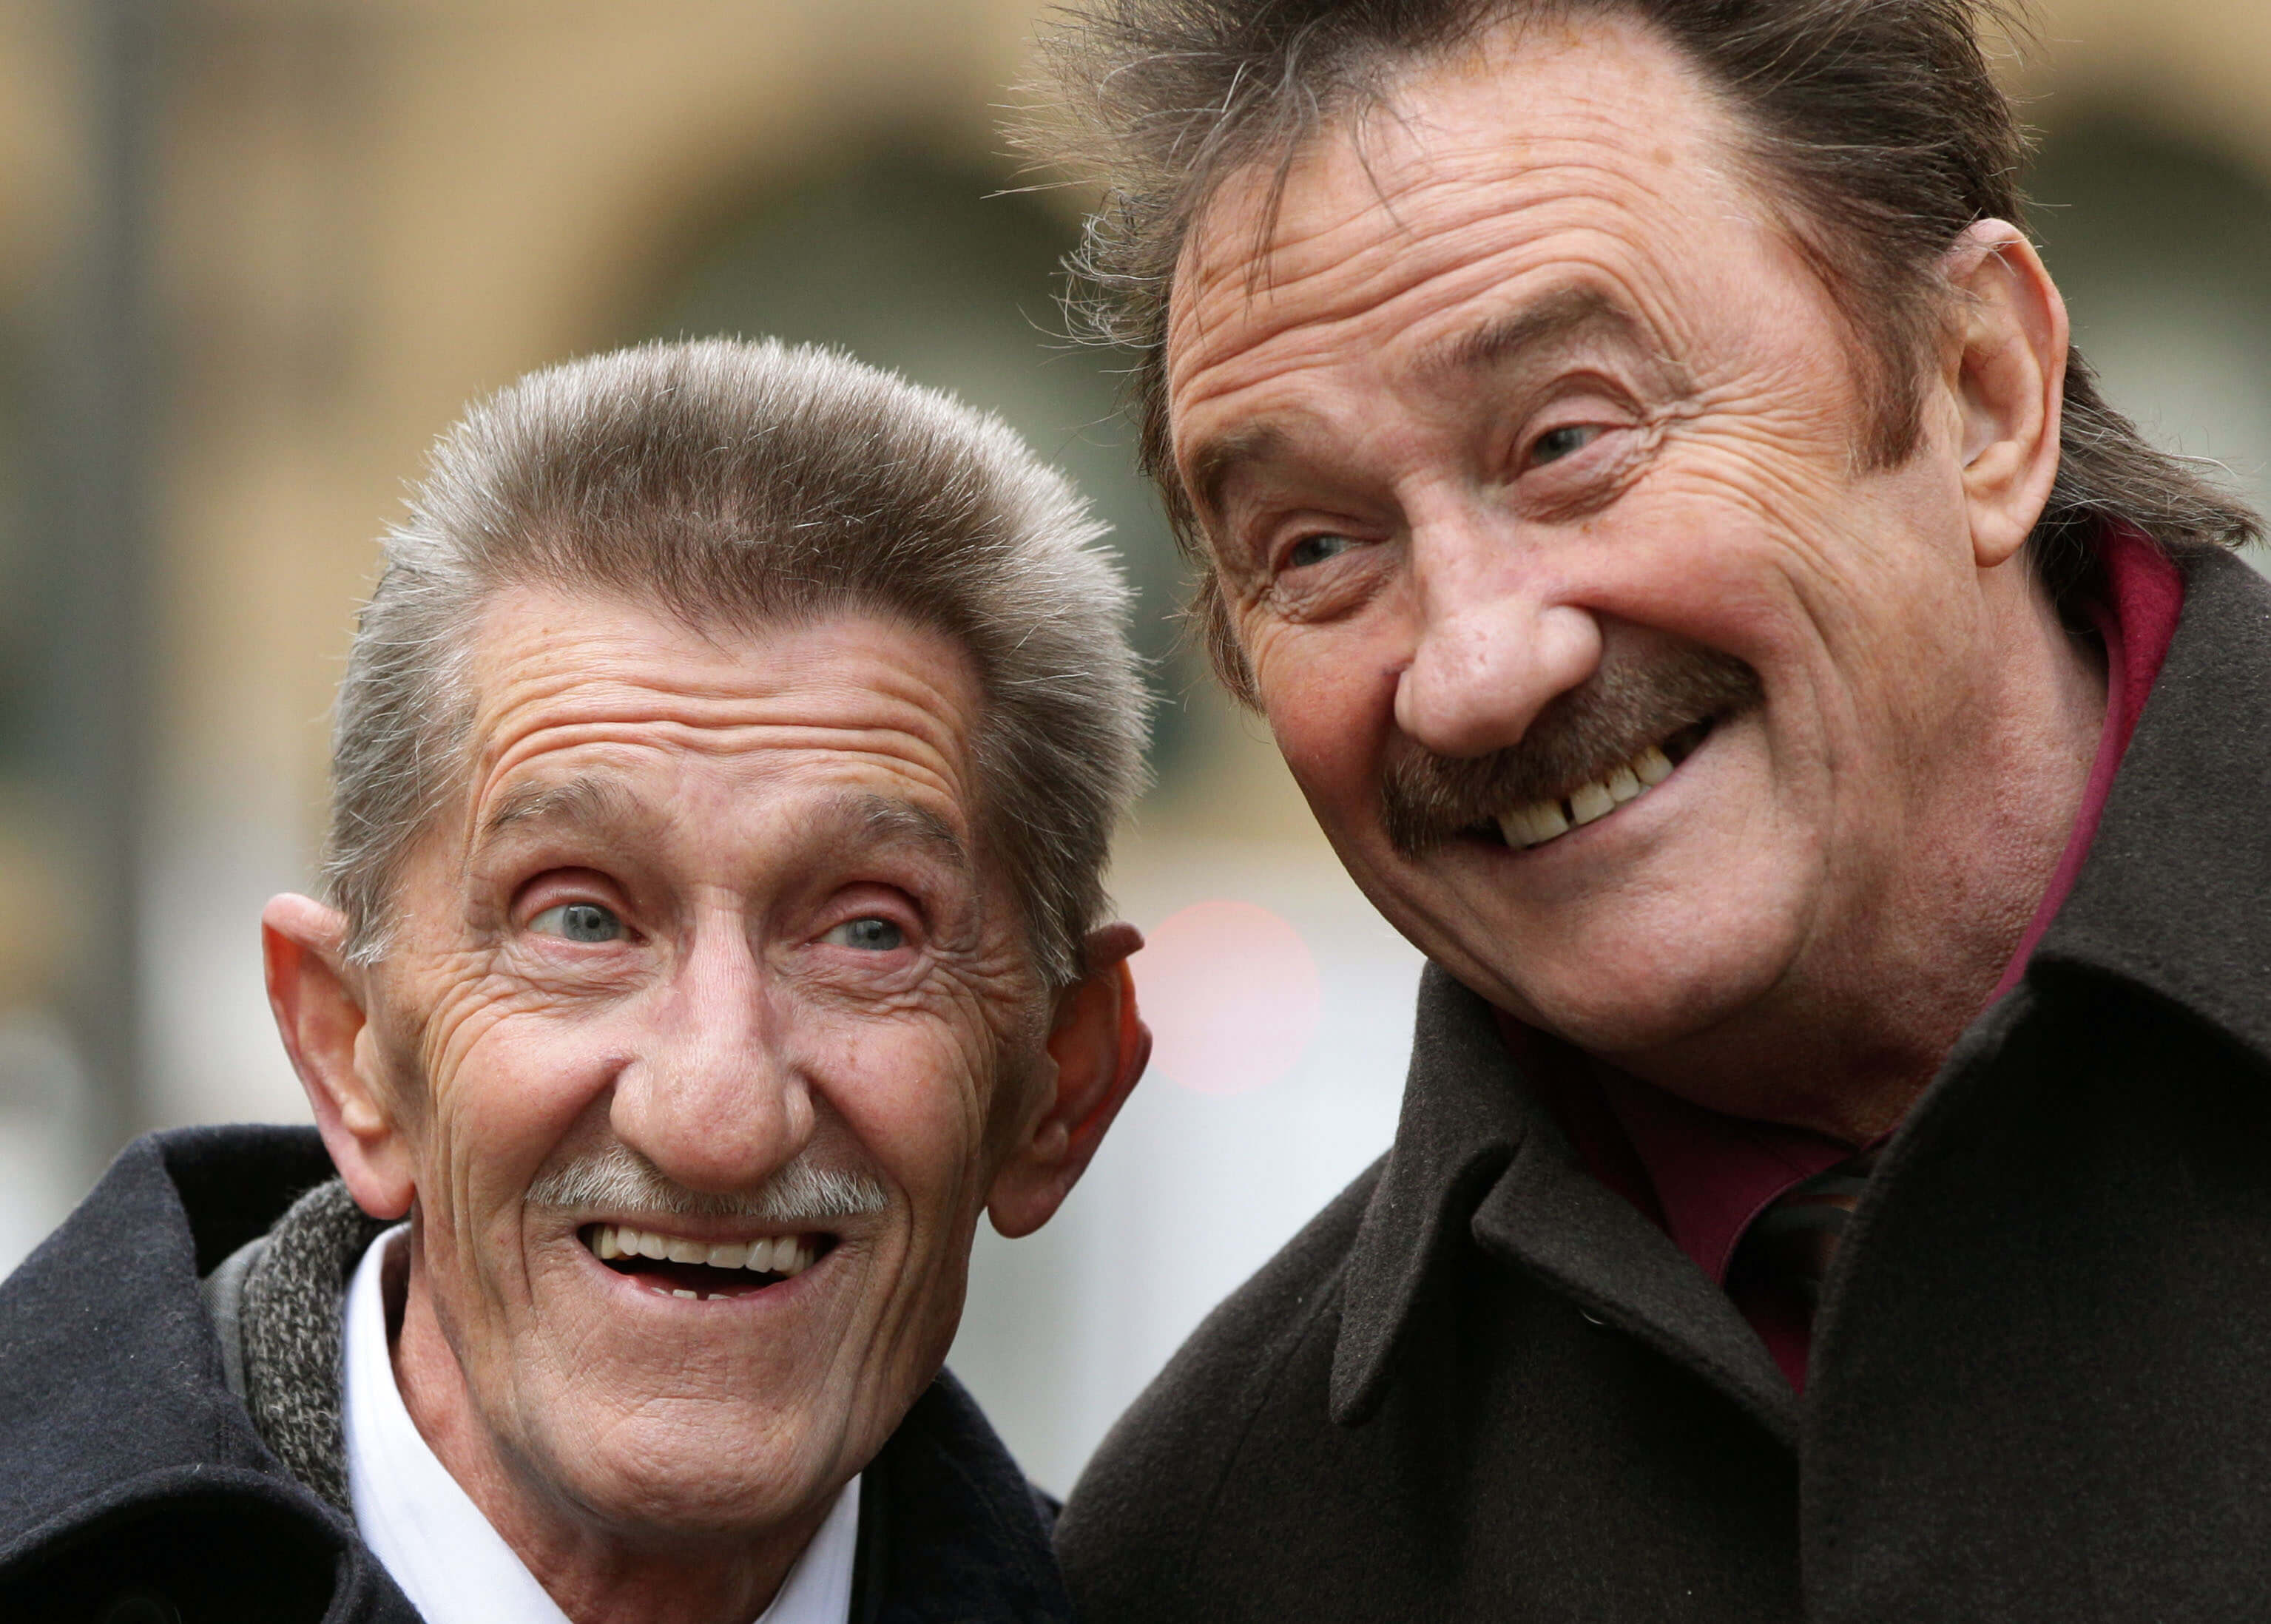 'Disturbing' Dec Donnelly And Paul Chuckle Meme Blasted By Fans chuckle1